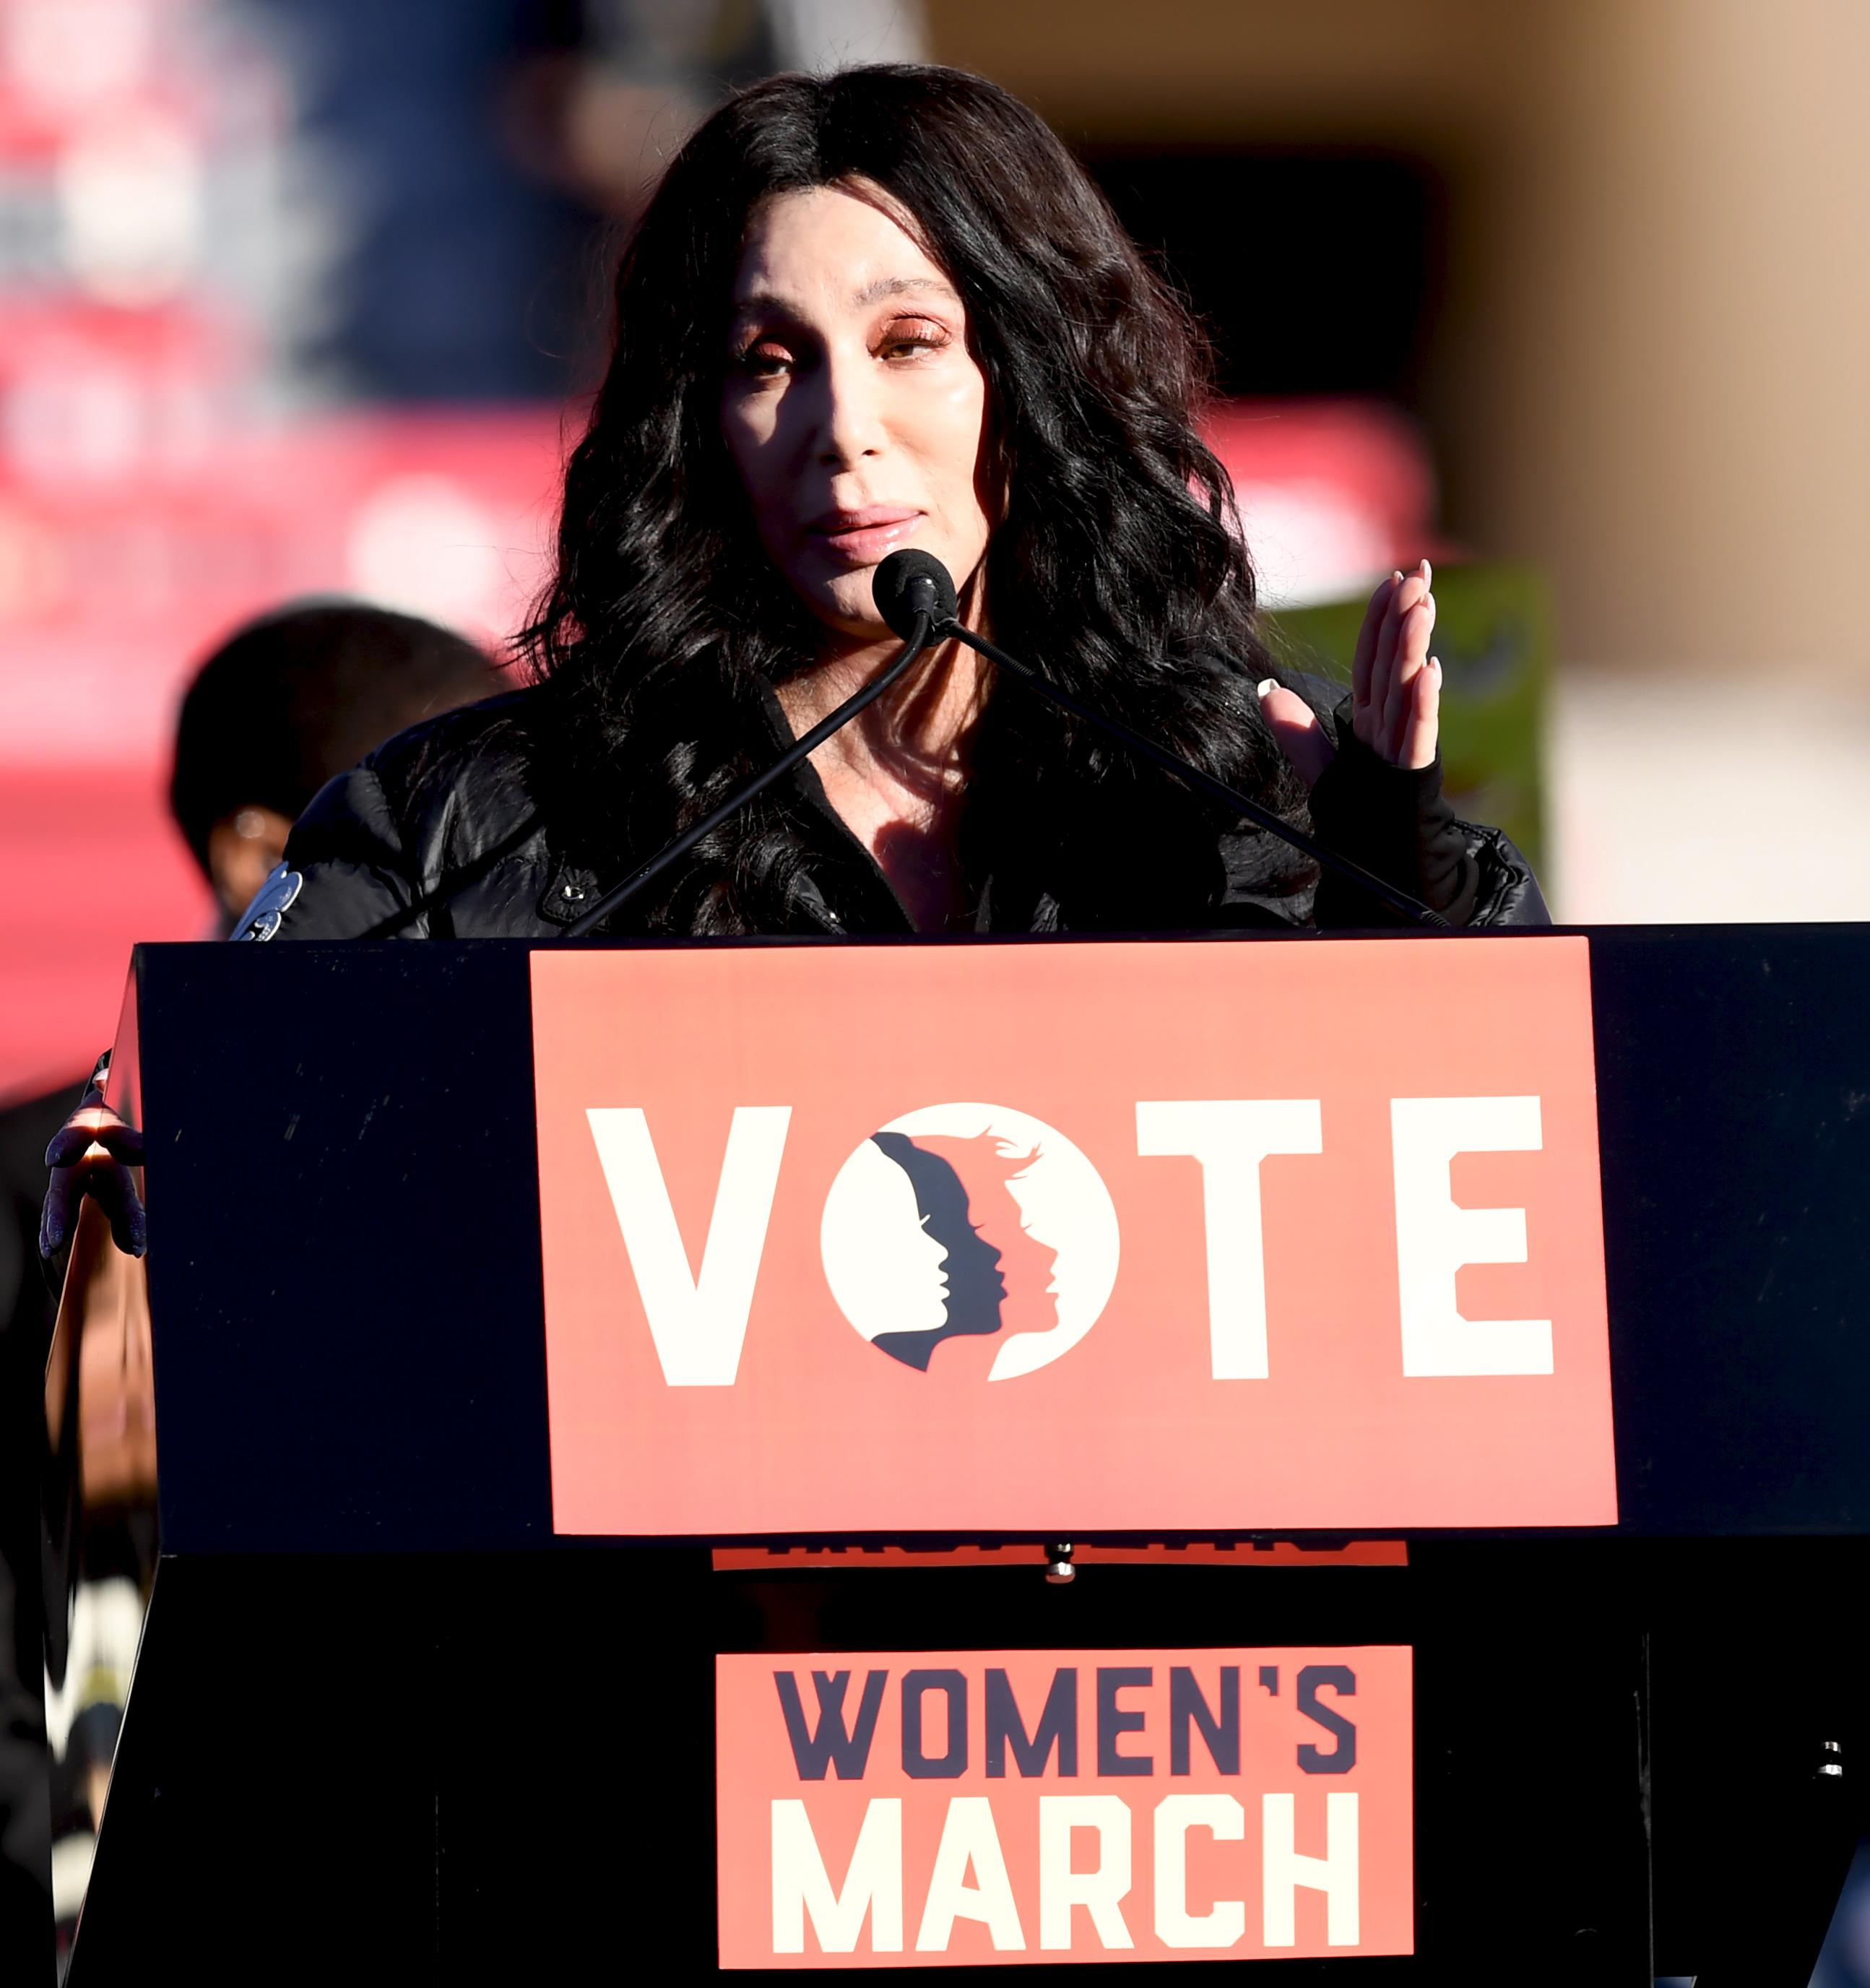 The one-and-only Cher speaking at the Women's March Power to the Polls Rally at Sam Boyd Stadium in Las Vegas. Sunday, January 21, 2017. CREDIT: Glenn Pinkerton/Las Vegas News Bureau